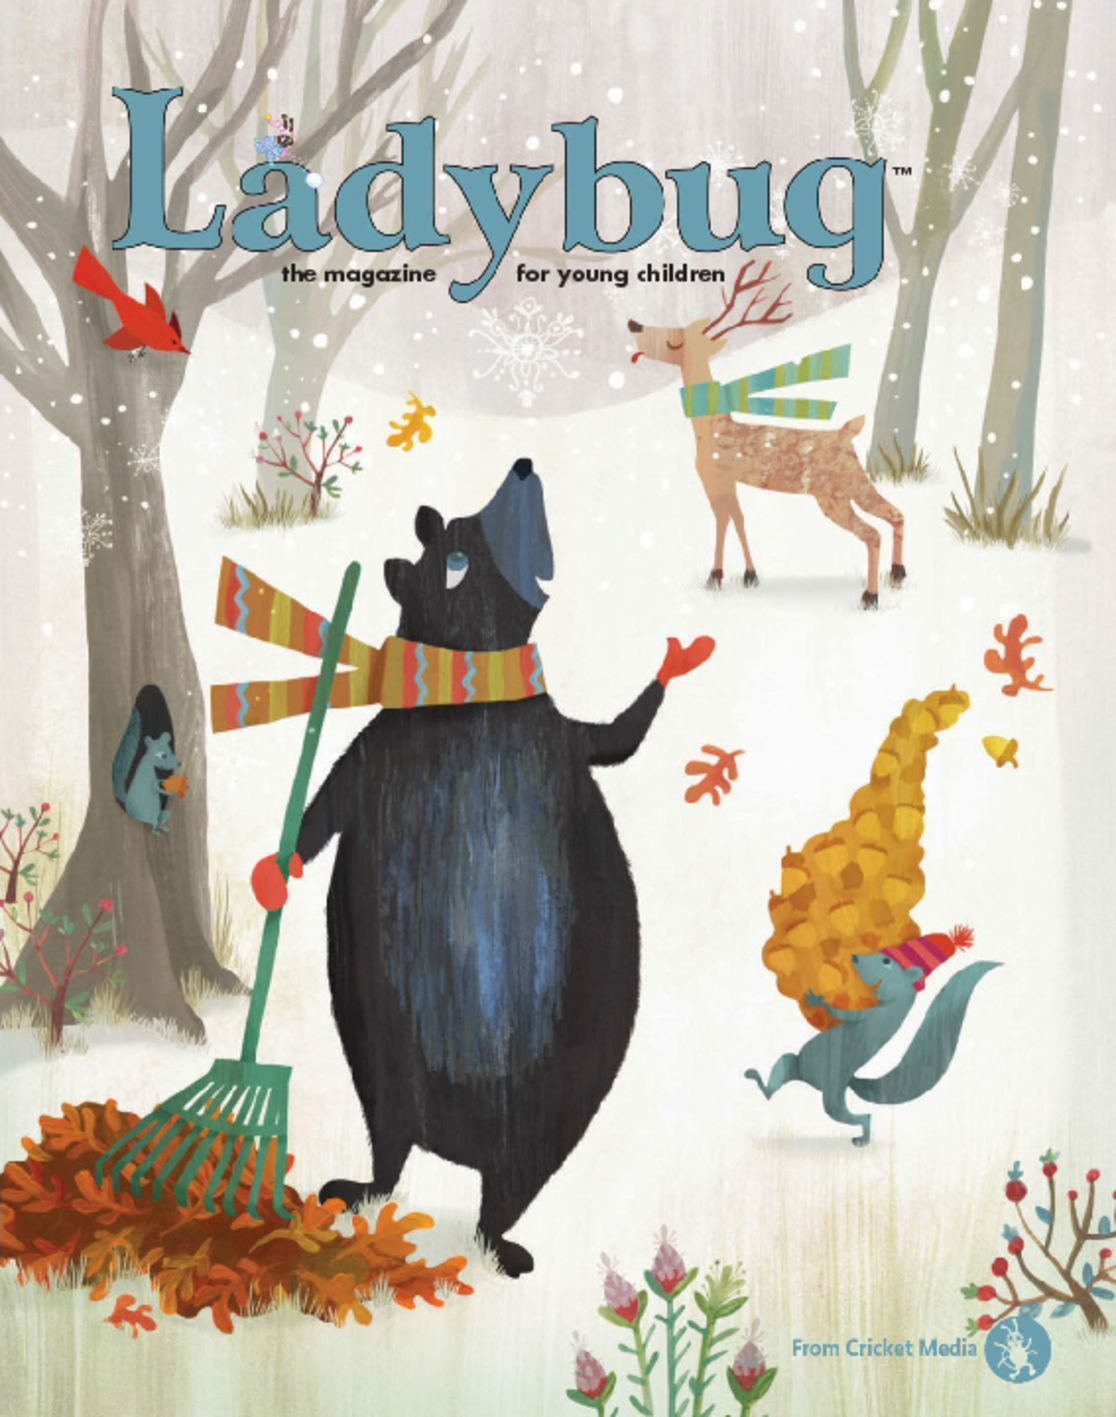 Ladybug Stories Poems And Songs For Young Kids And Children Digital